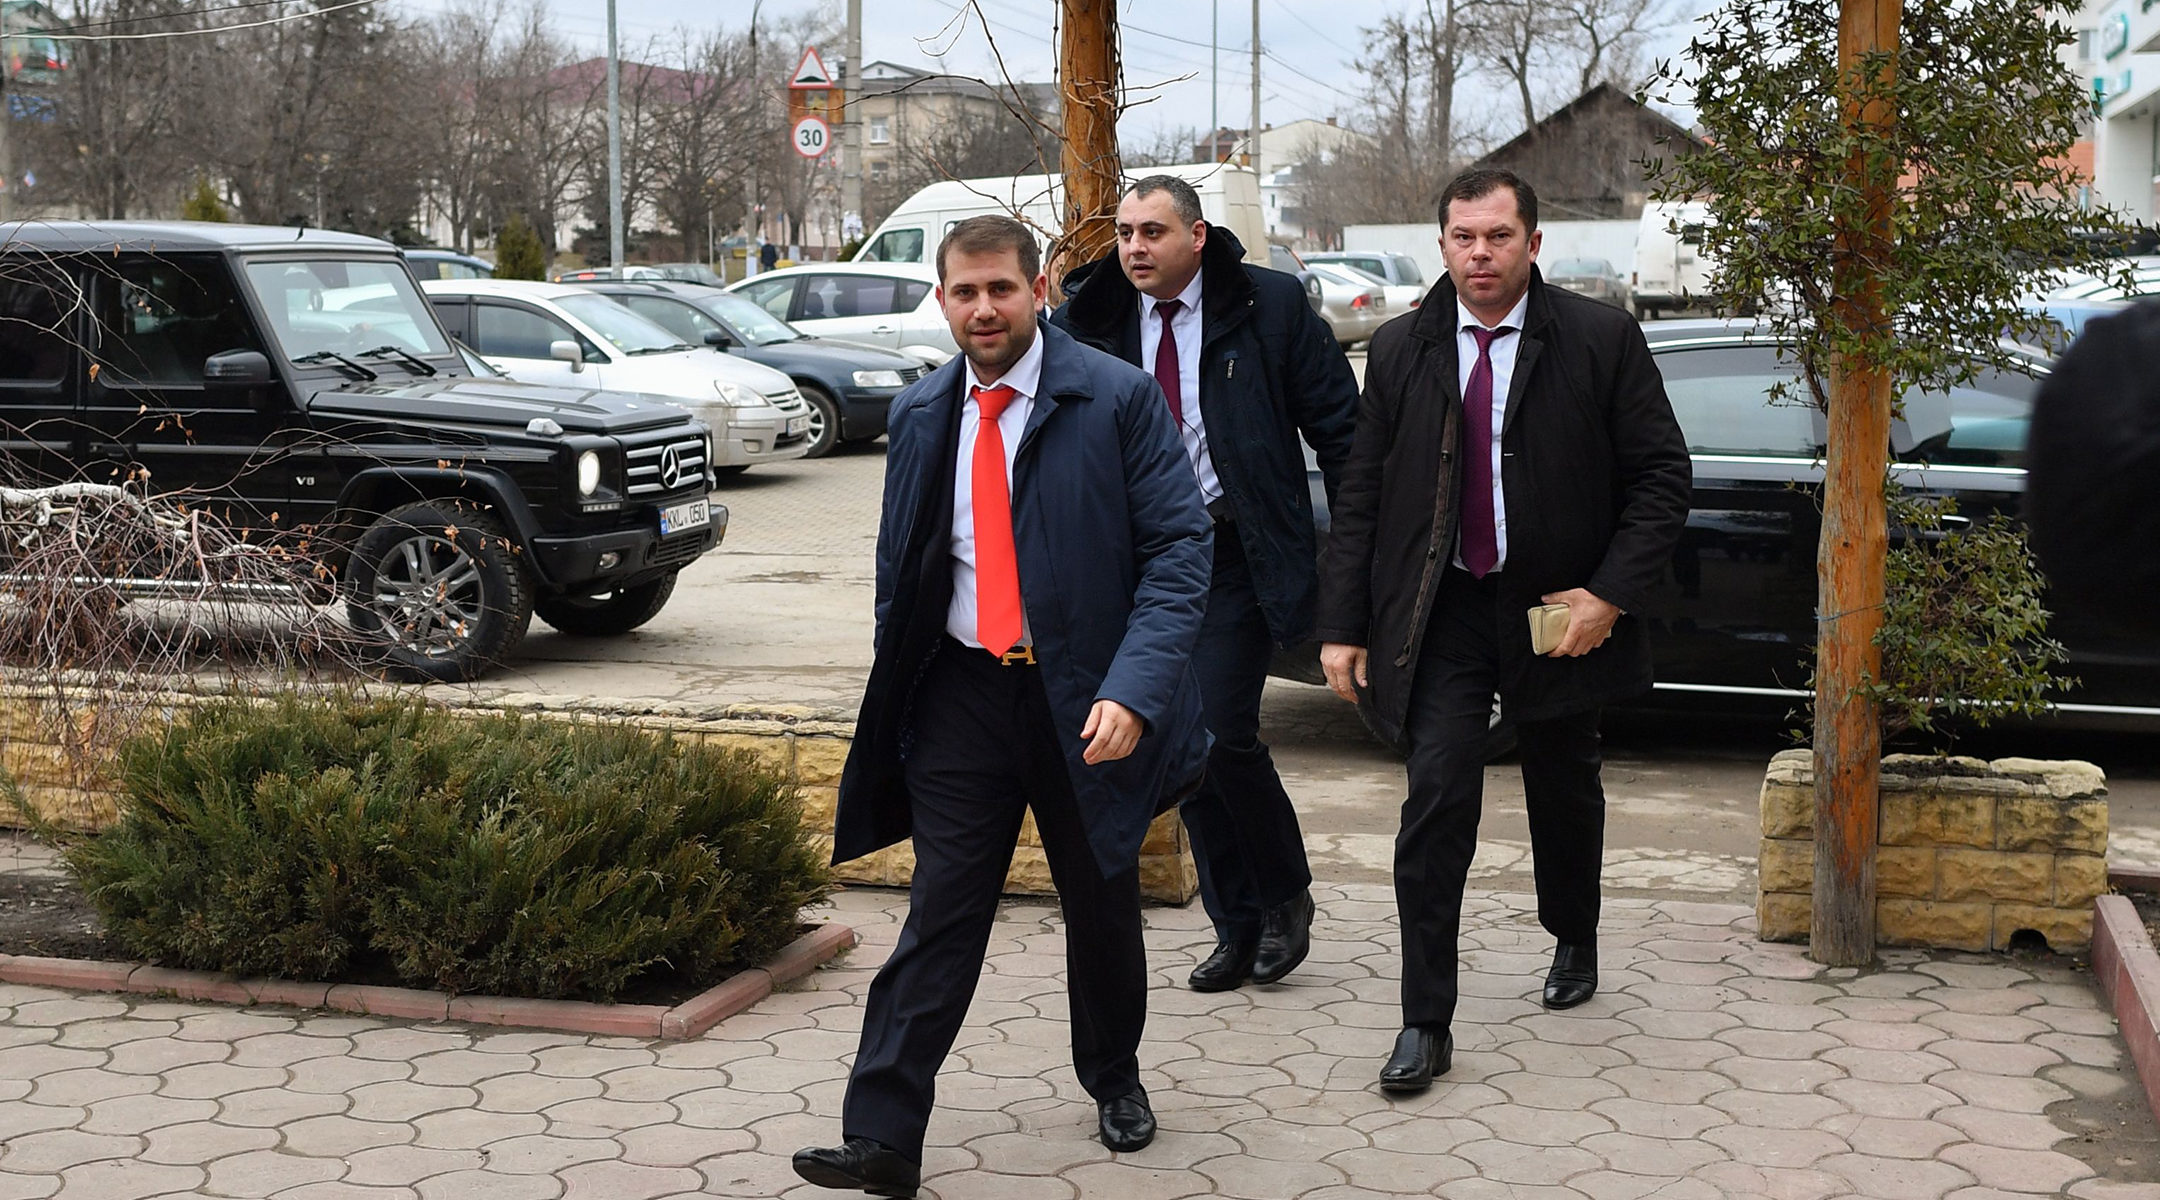 Ilan Shor, a lawmaker and former mayor who was convicted of embezzlement, arriving to meet supporters in Comrat, Moldova on February 15, 2019. (Daniel Mihailescu/AFP/Getty Images)